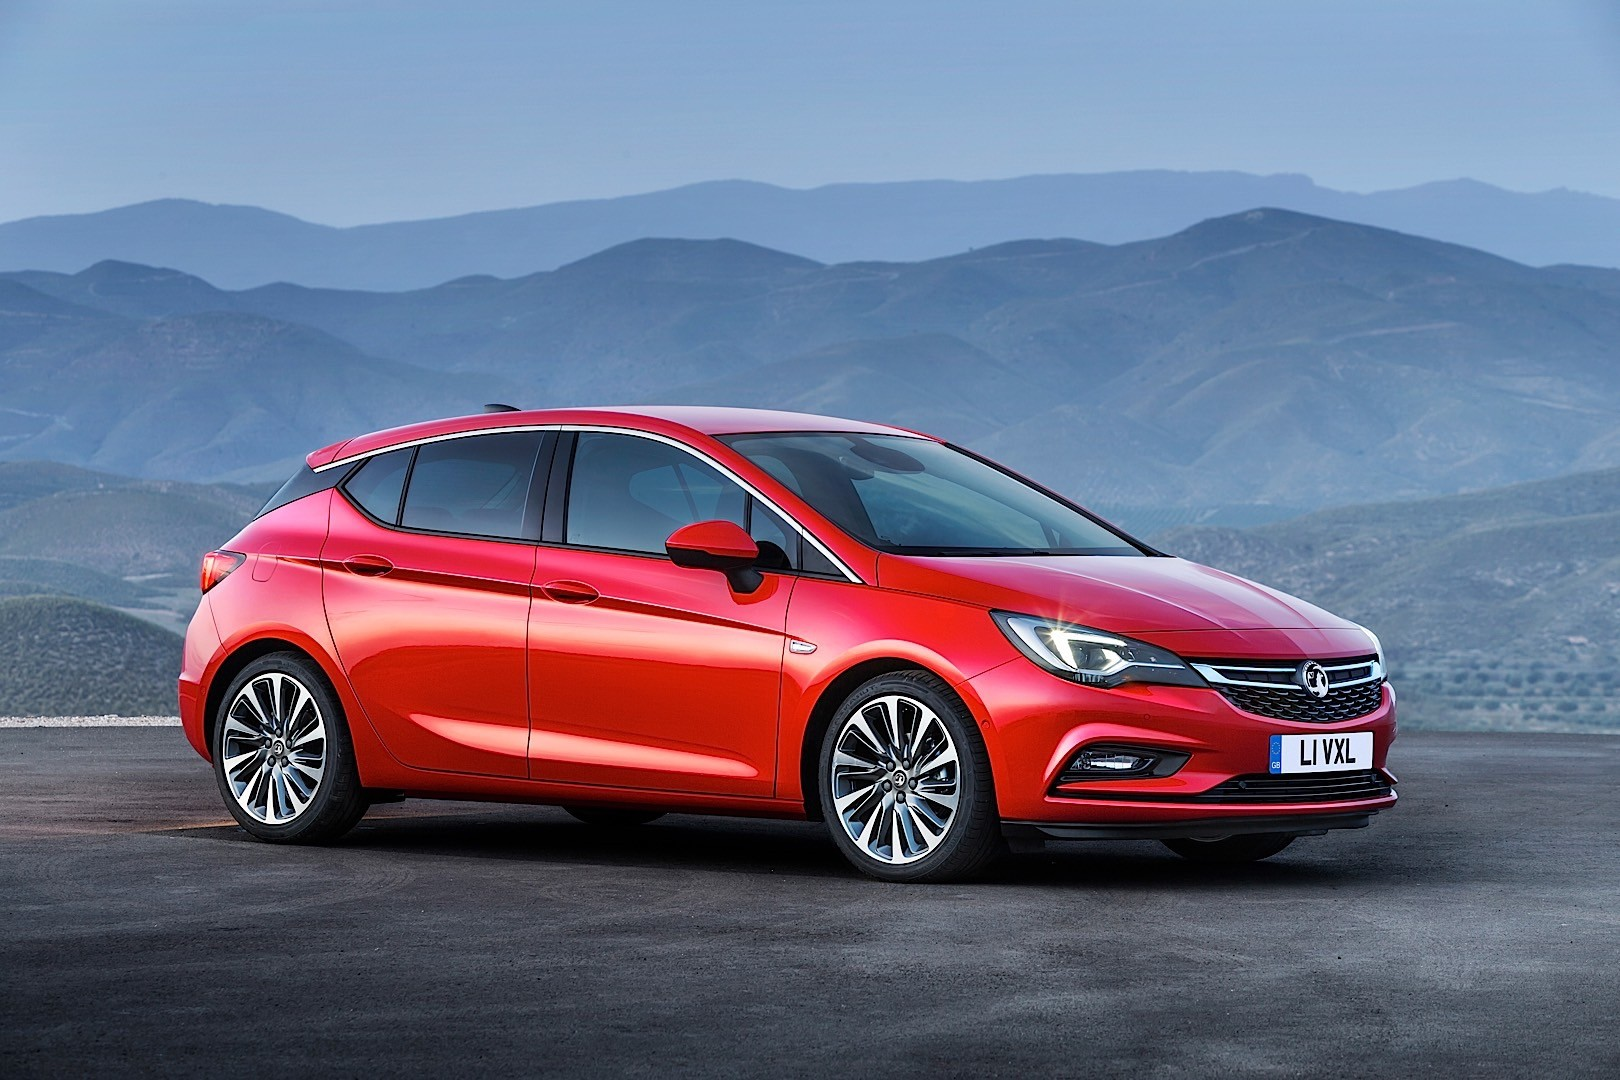 vauxhall astra hatchback specs 2015 2016 2017 2018 autoevolution. Black Bedroom Furniture Sets. Home Design Ideas